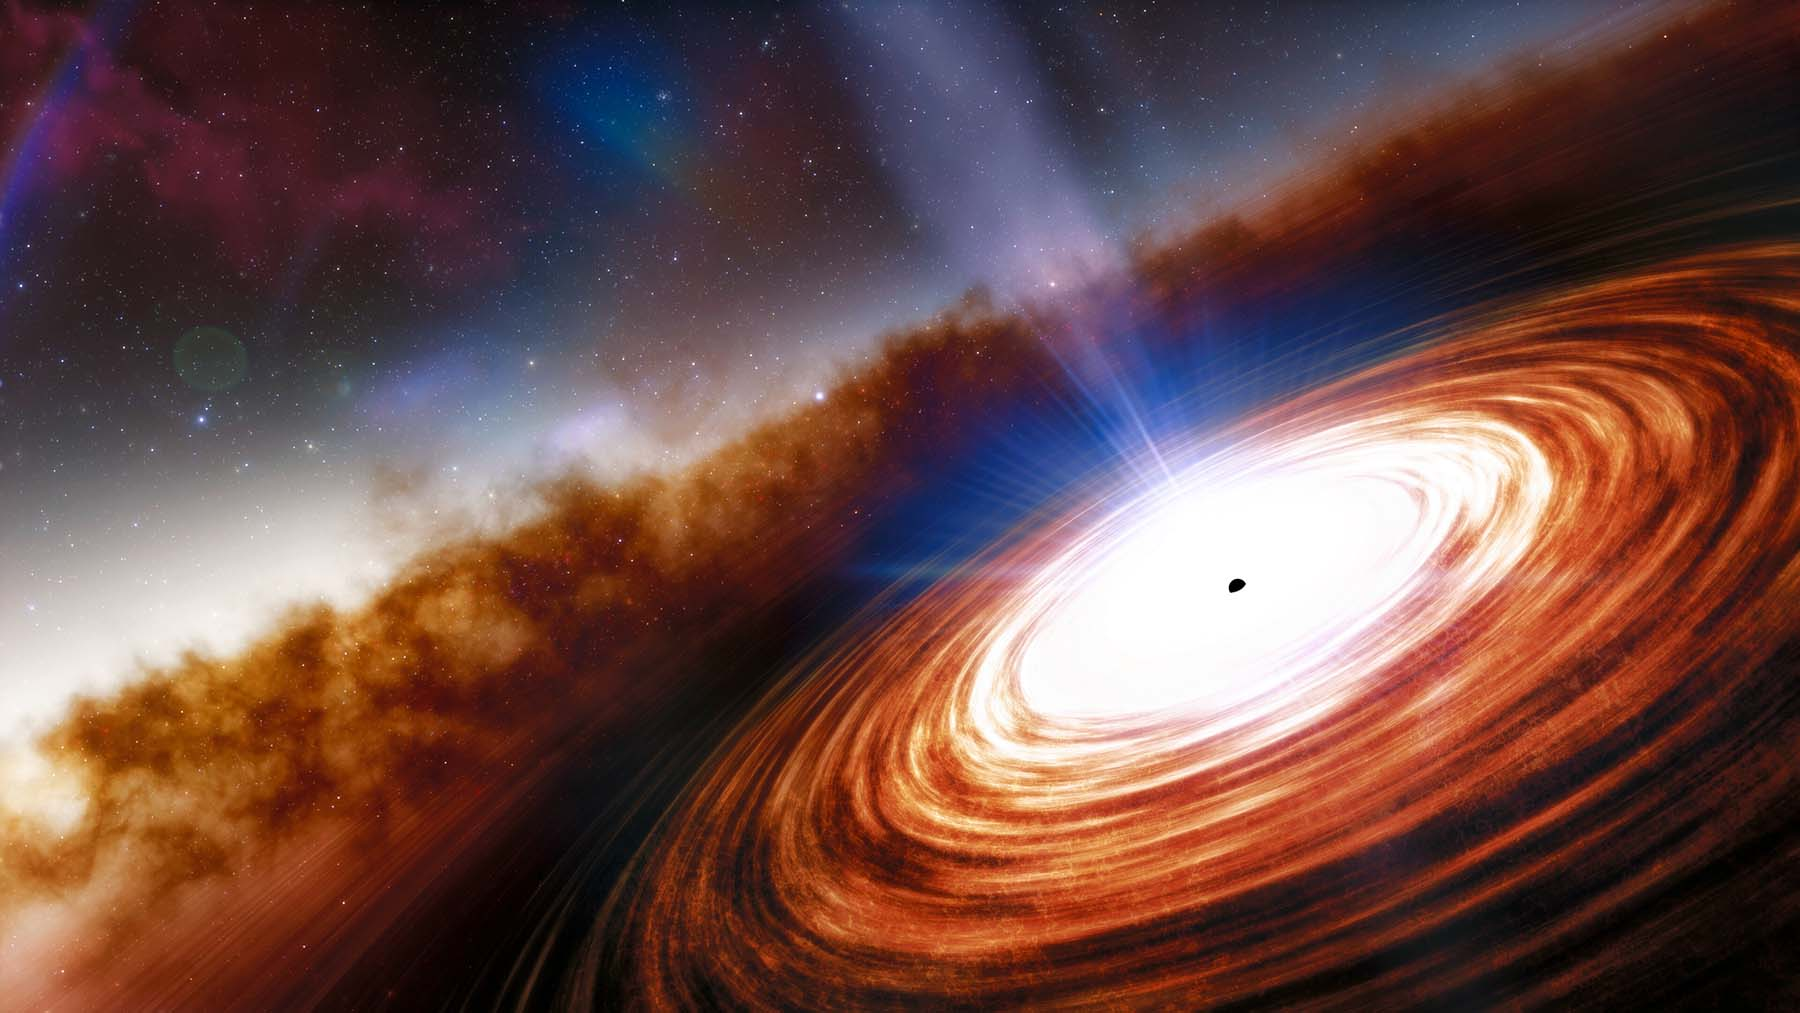 An artist's impression of quasar J0313-1806 showing the supermassive black hole and the extremely high velocity wind.